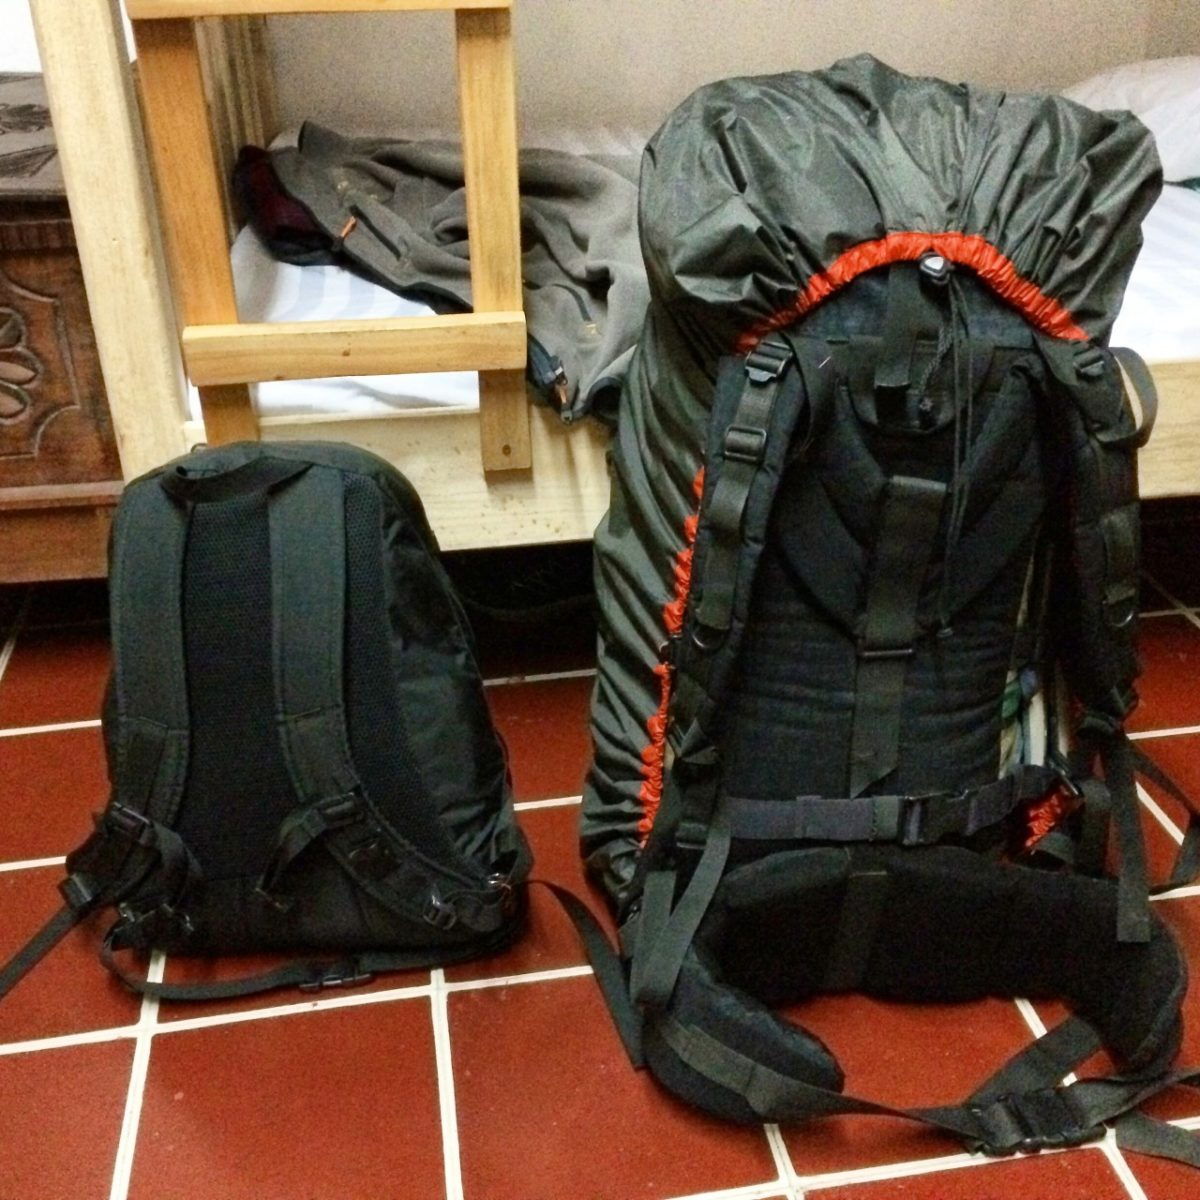 Backpacking through Central America with just a carry-on